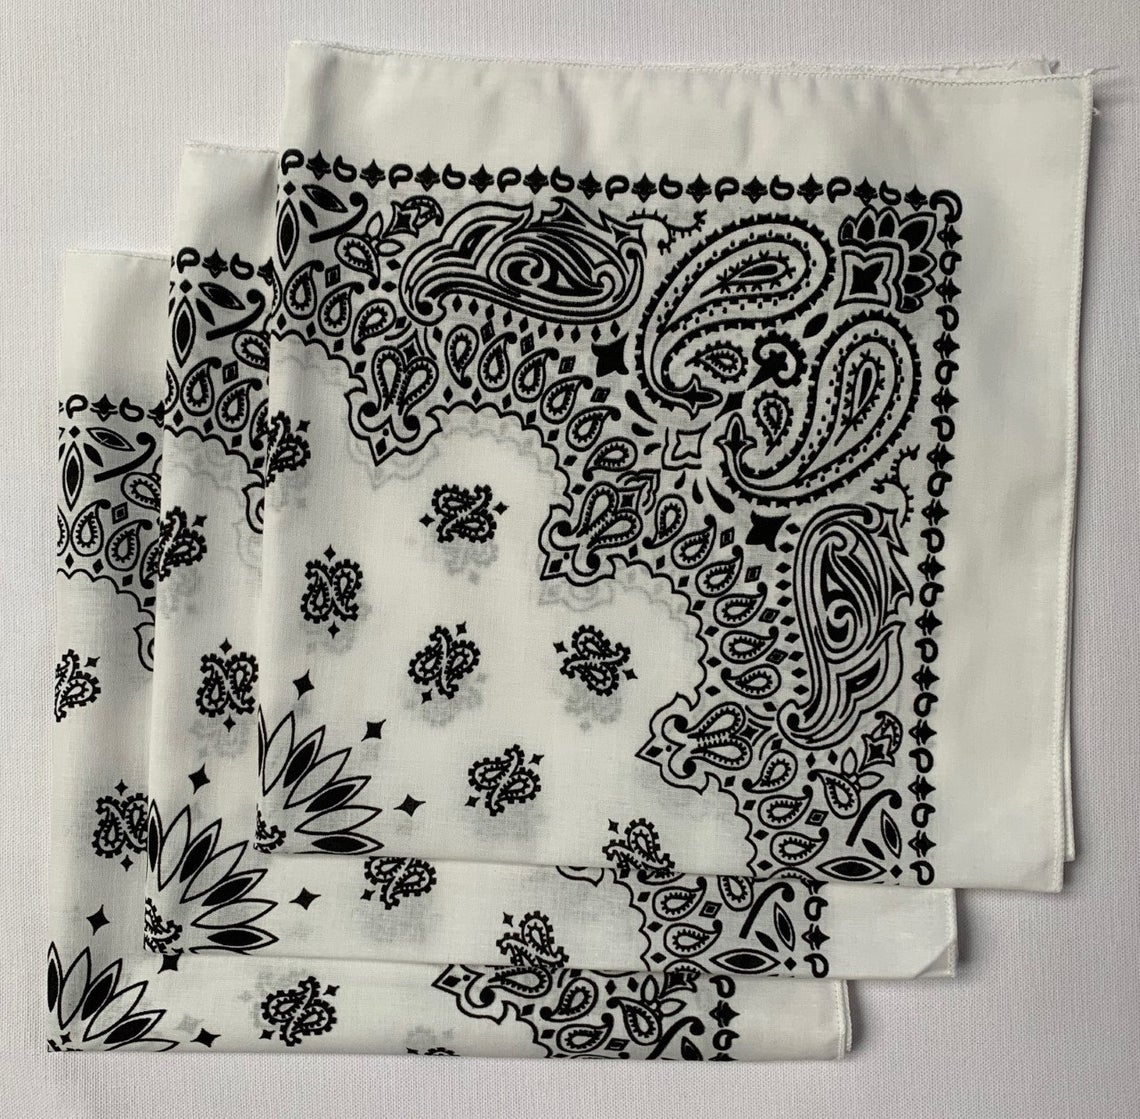 "White Paisley Bandanas - Made In The USA (3 Pk) 22"" x 22"""